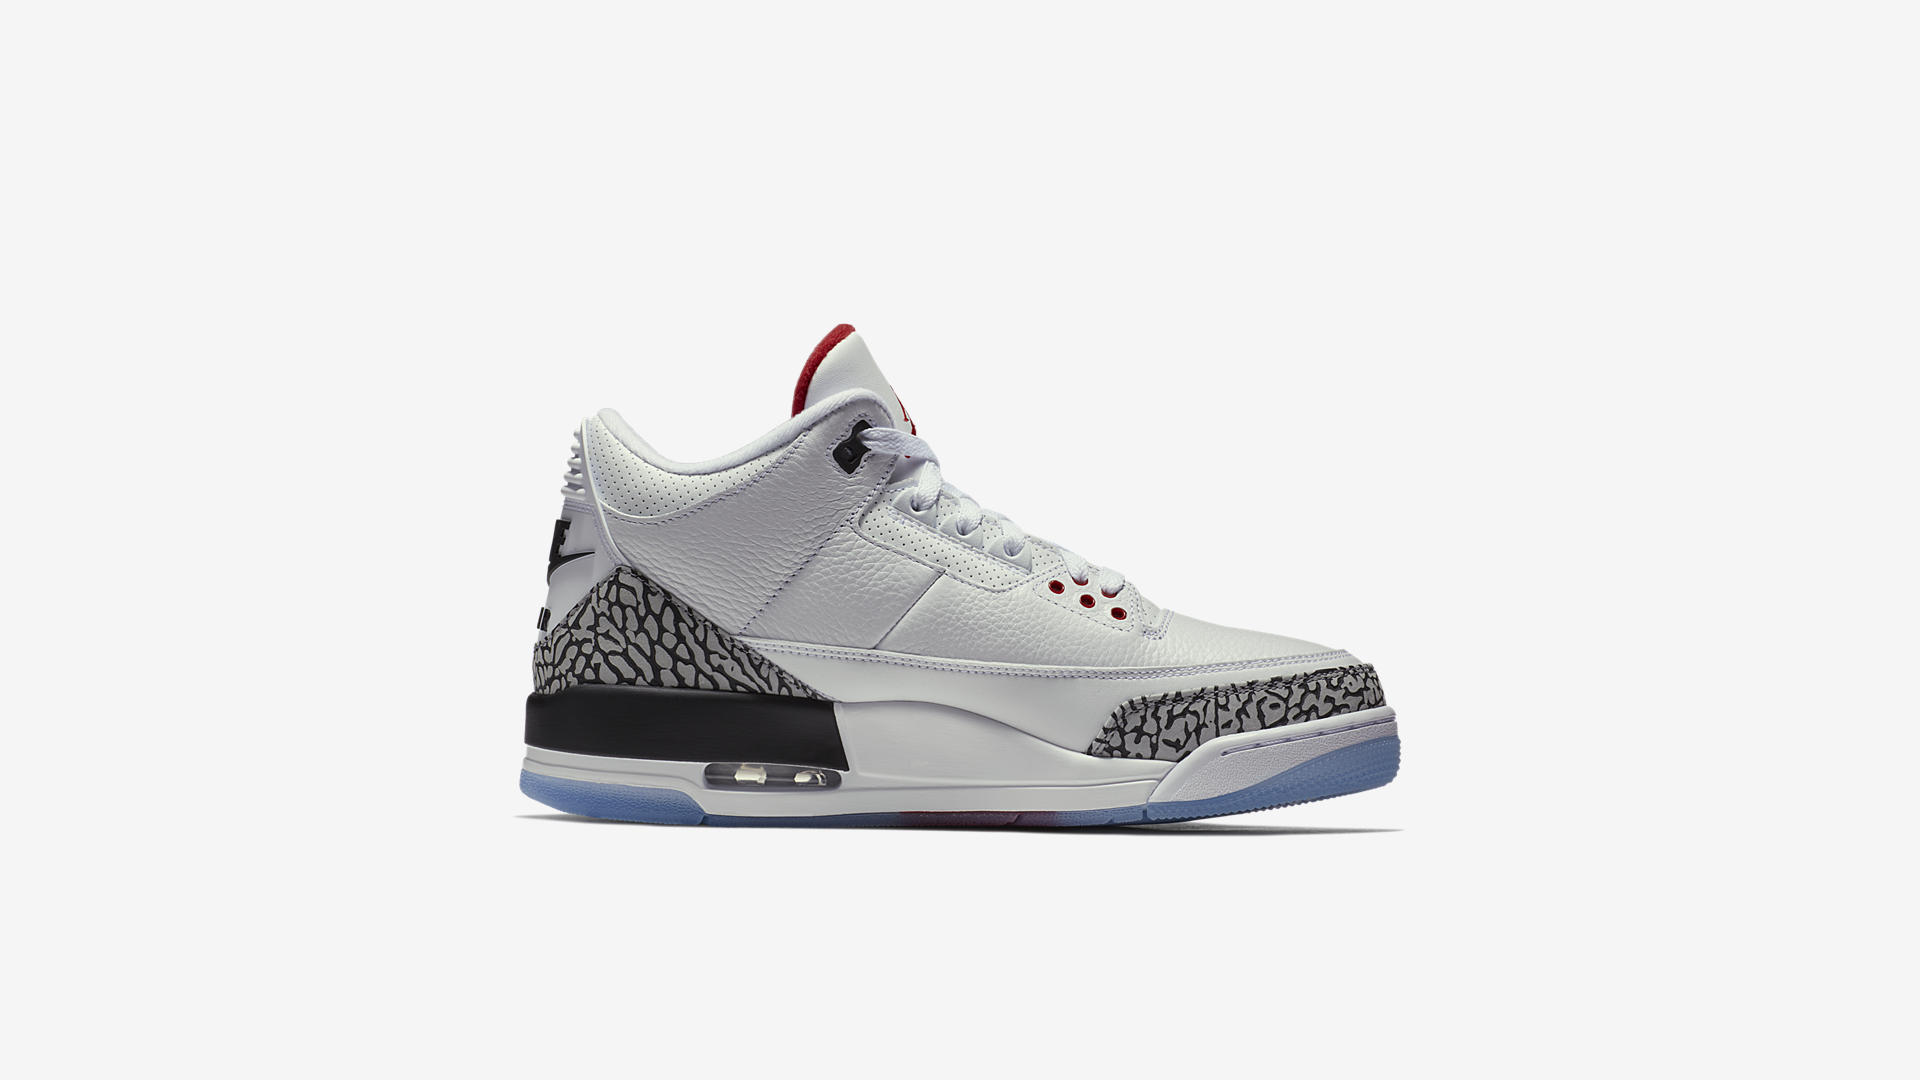 923096 101 Air Jordan 3 Free Throw Line 4